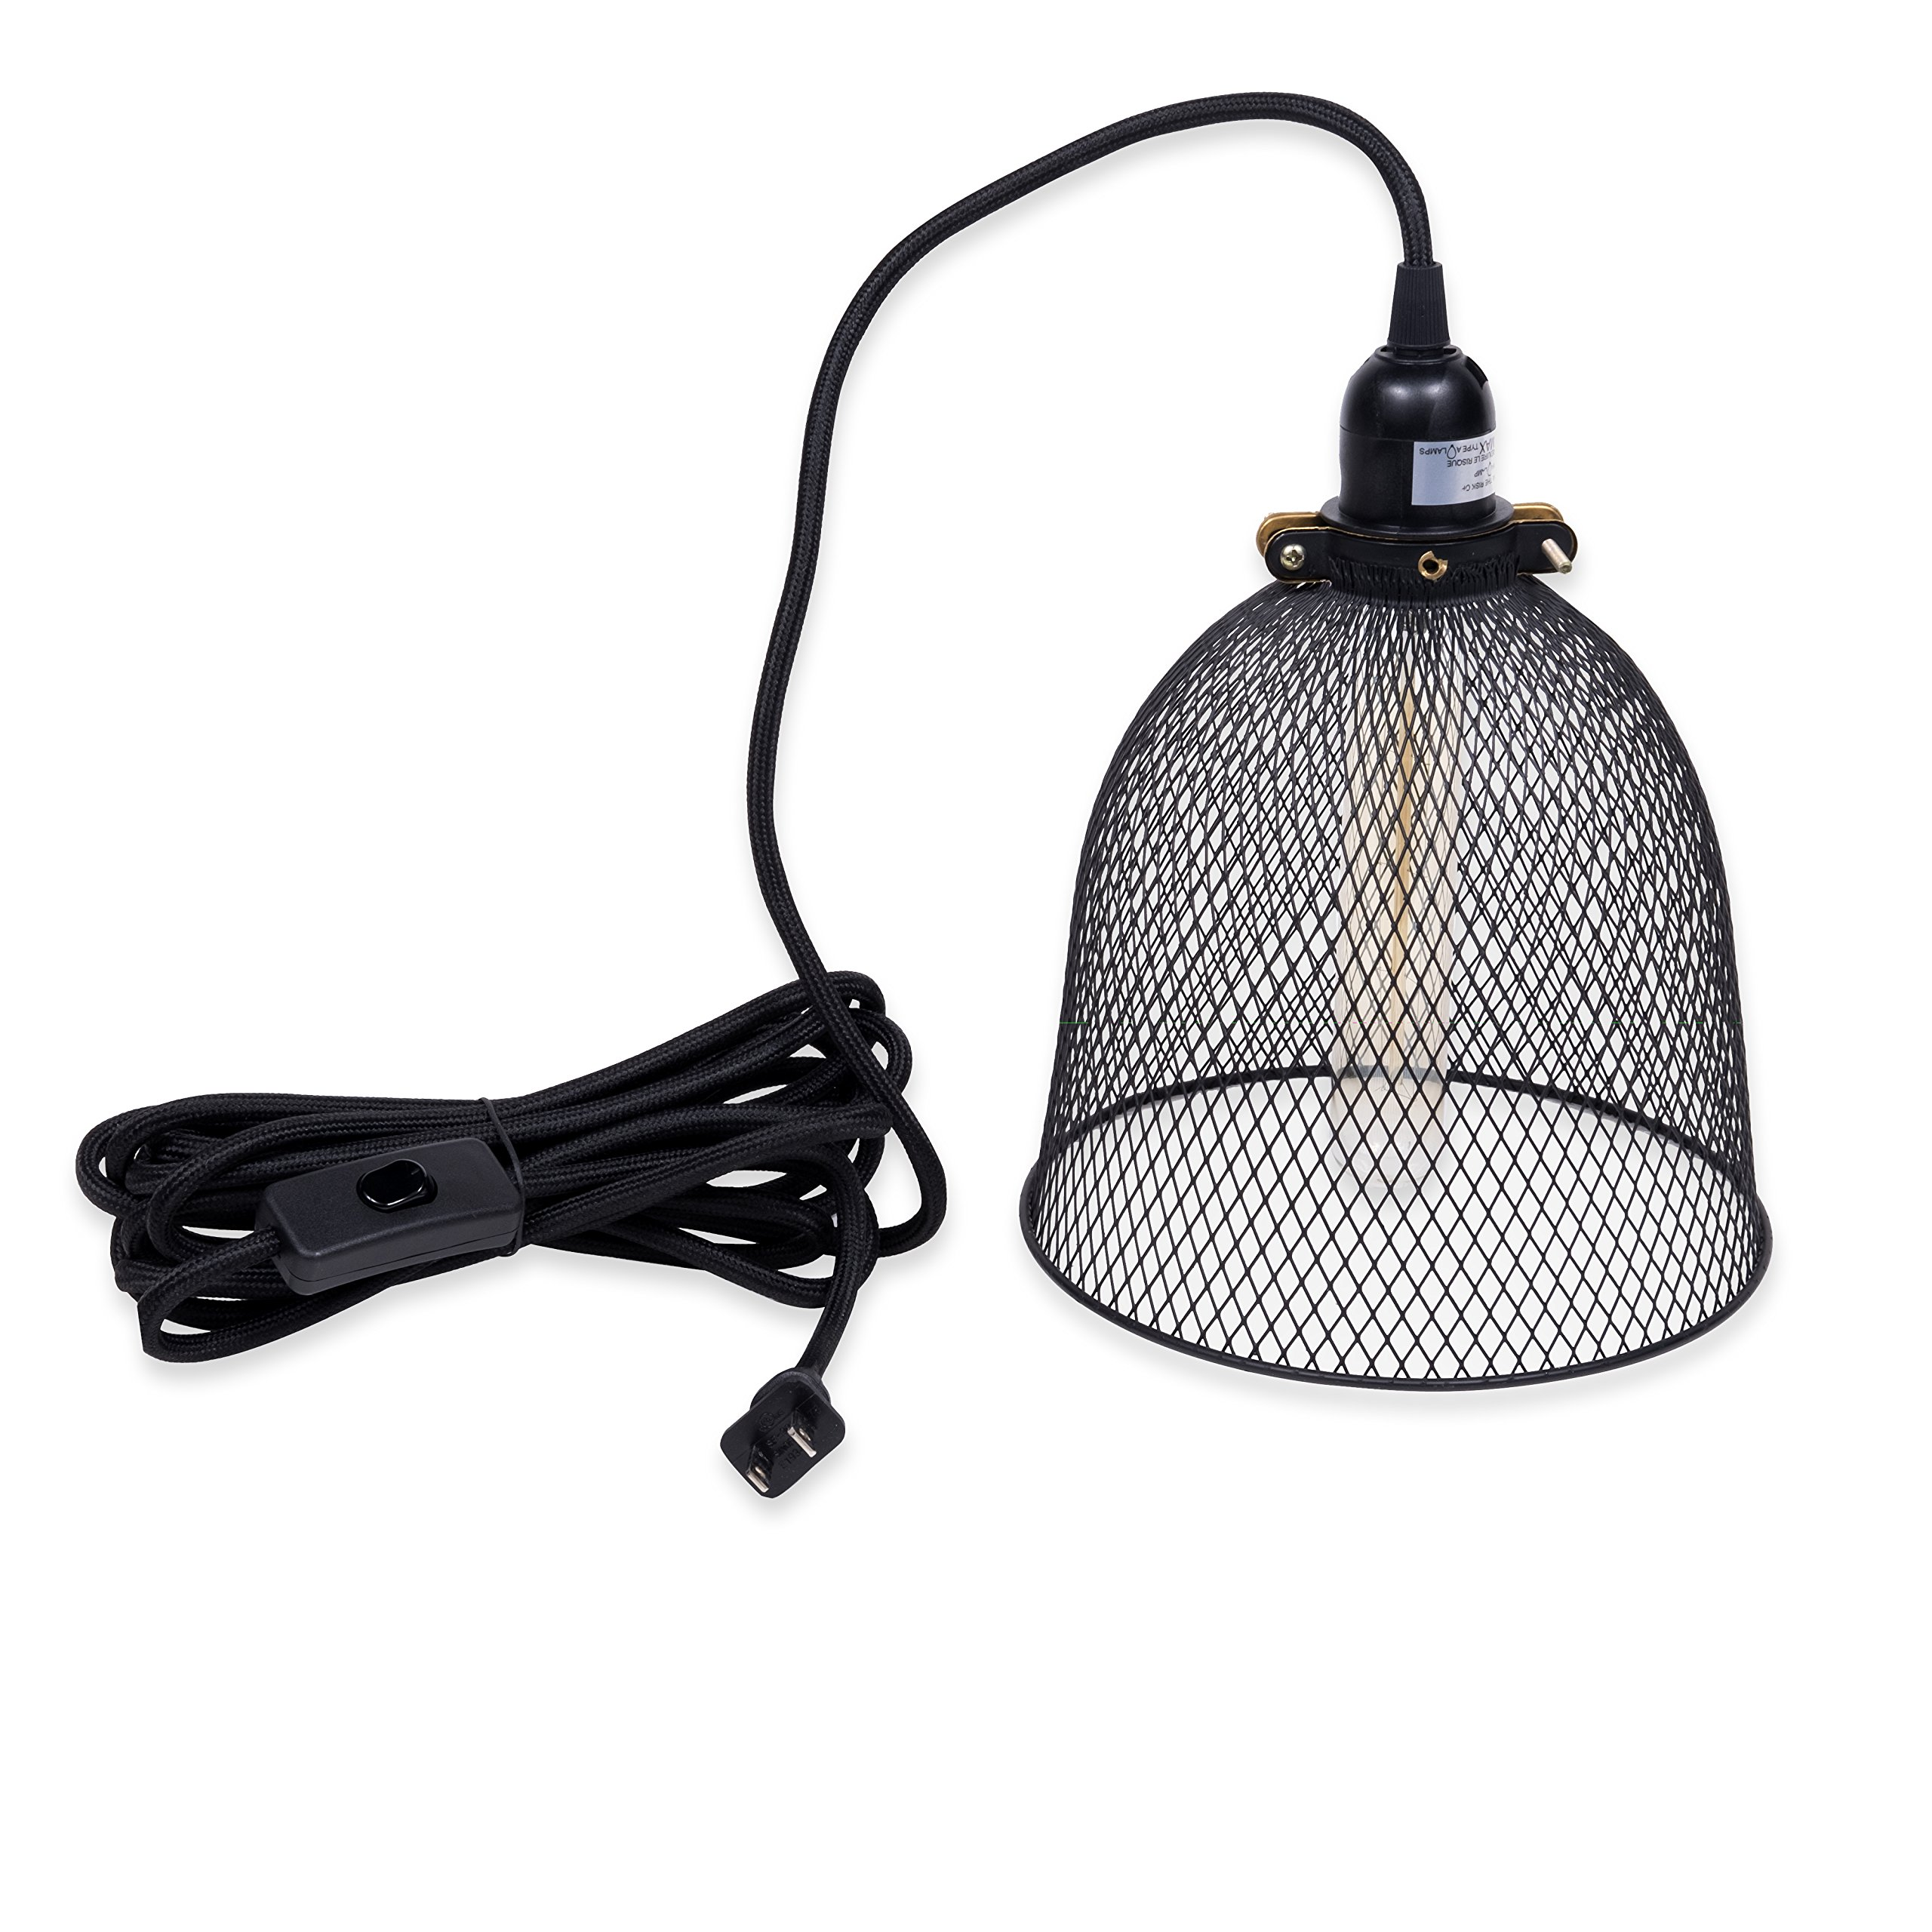 1-Light Portable Hanging Plug-In Pendant Black Shade Swag